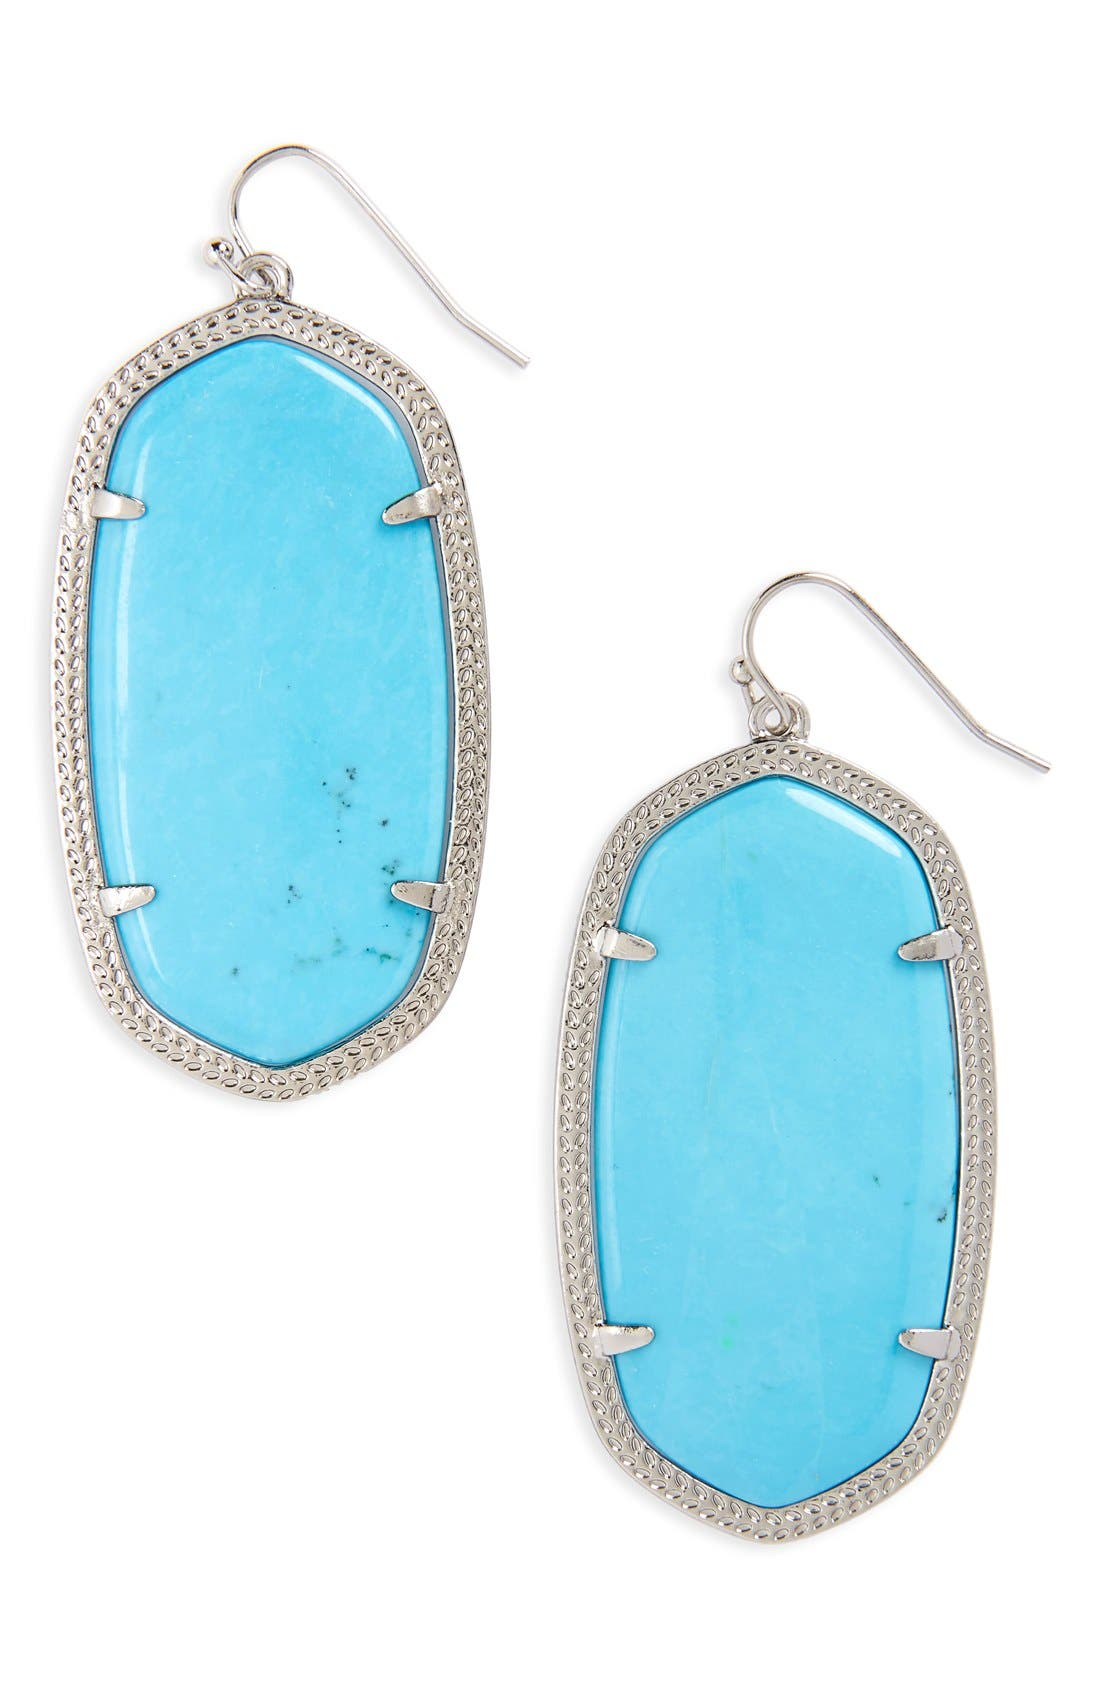 Danielle - Large Oval Statement Earrings,                             Main thumbnail 61, color,